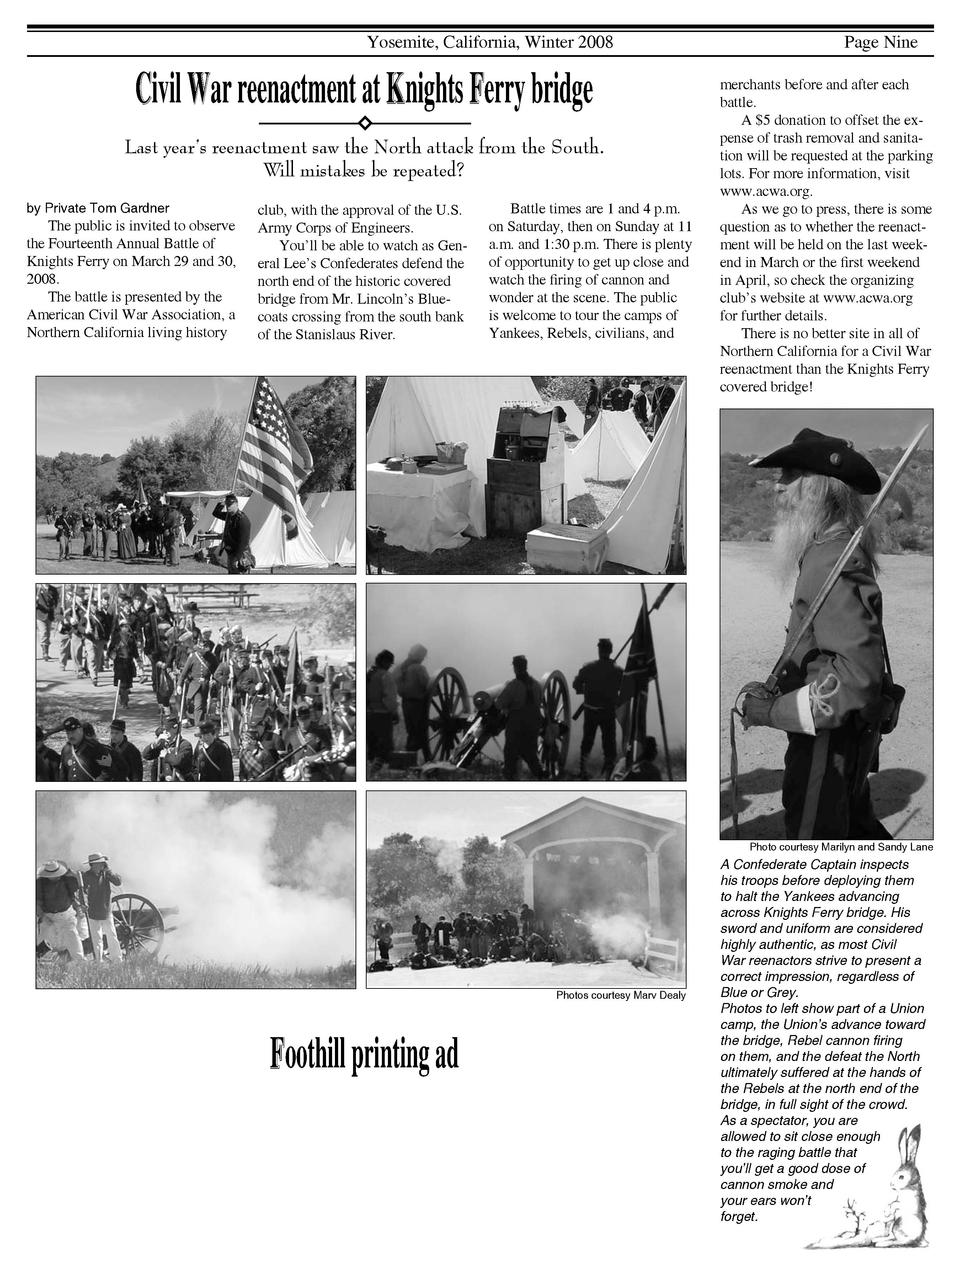 Yosemite, California, Winter 2008  Civil War reenactment at Knights Ferry bridge Last year   s reenactment saw the North a...